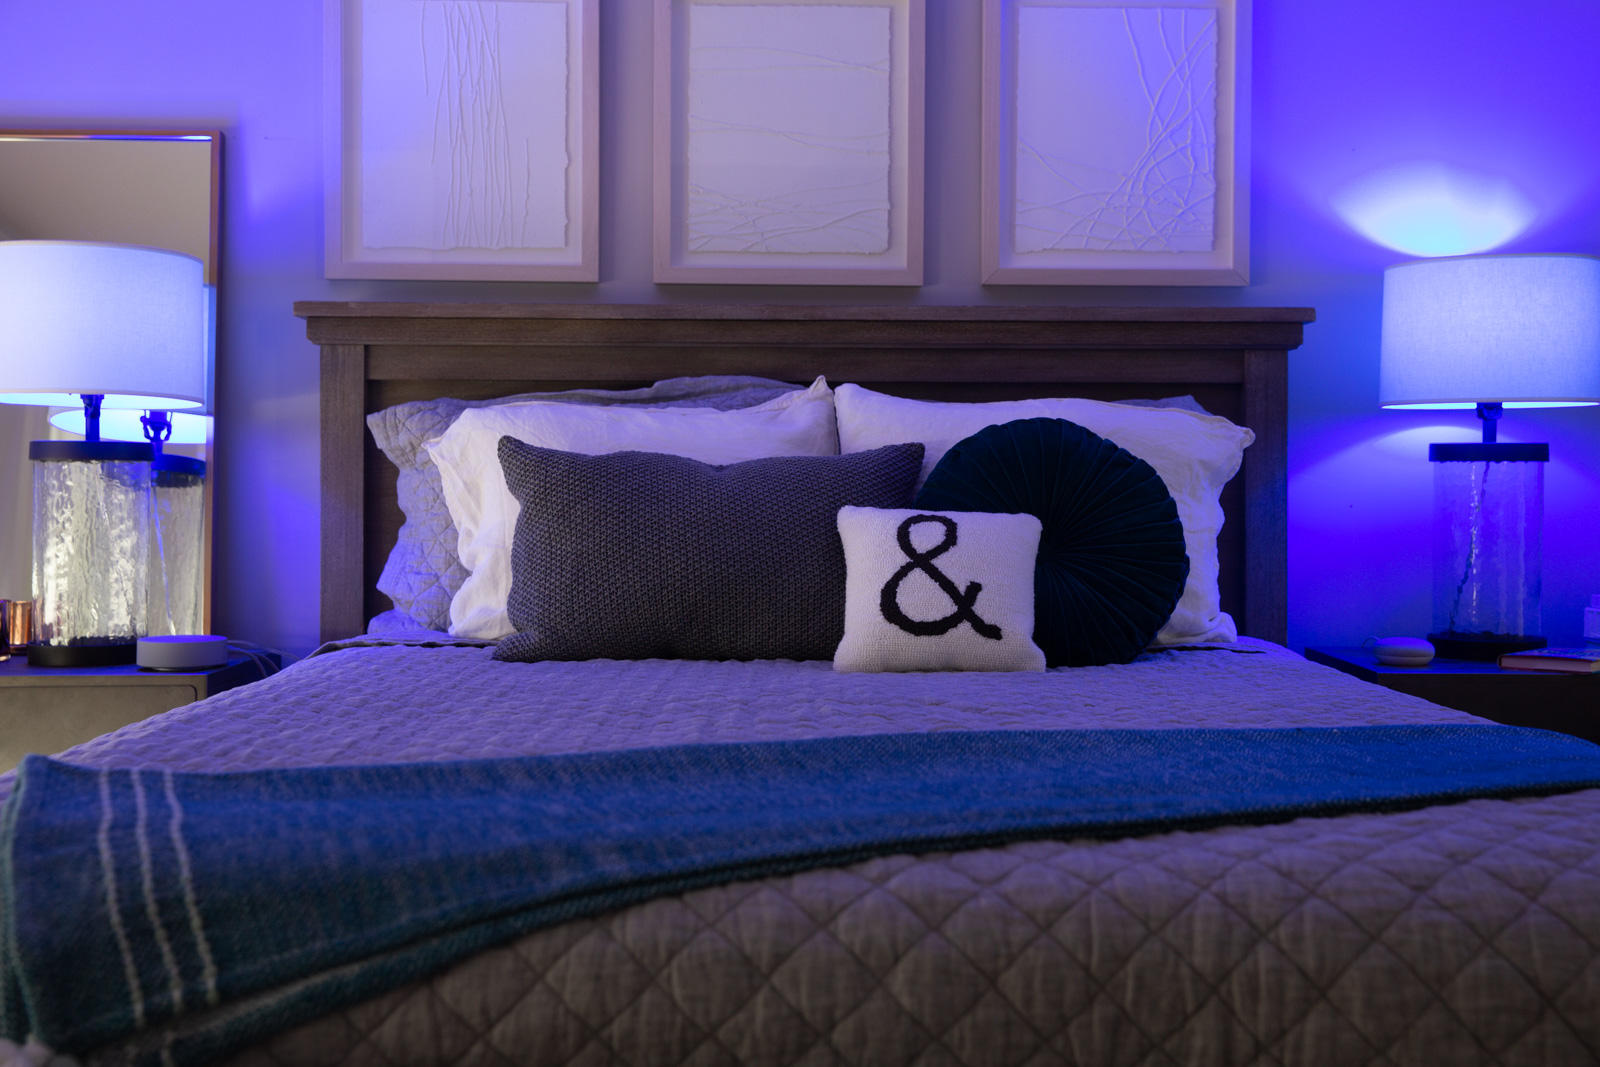 cnet-smart-home-stock-bed-10-1-18-8929